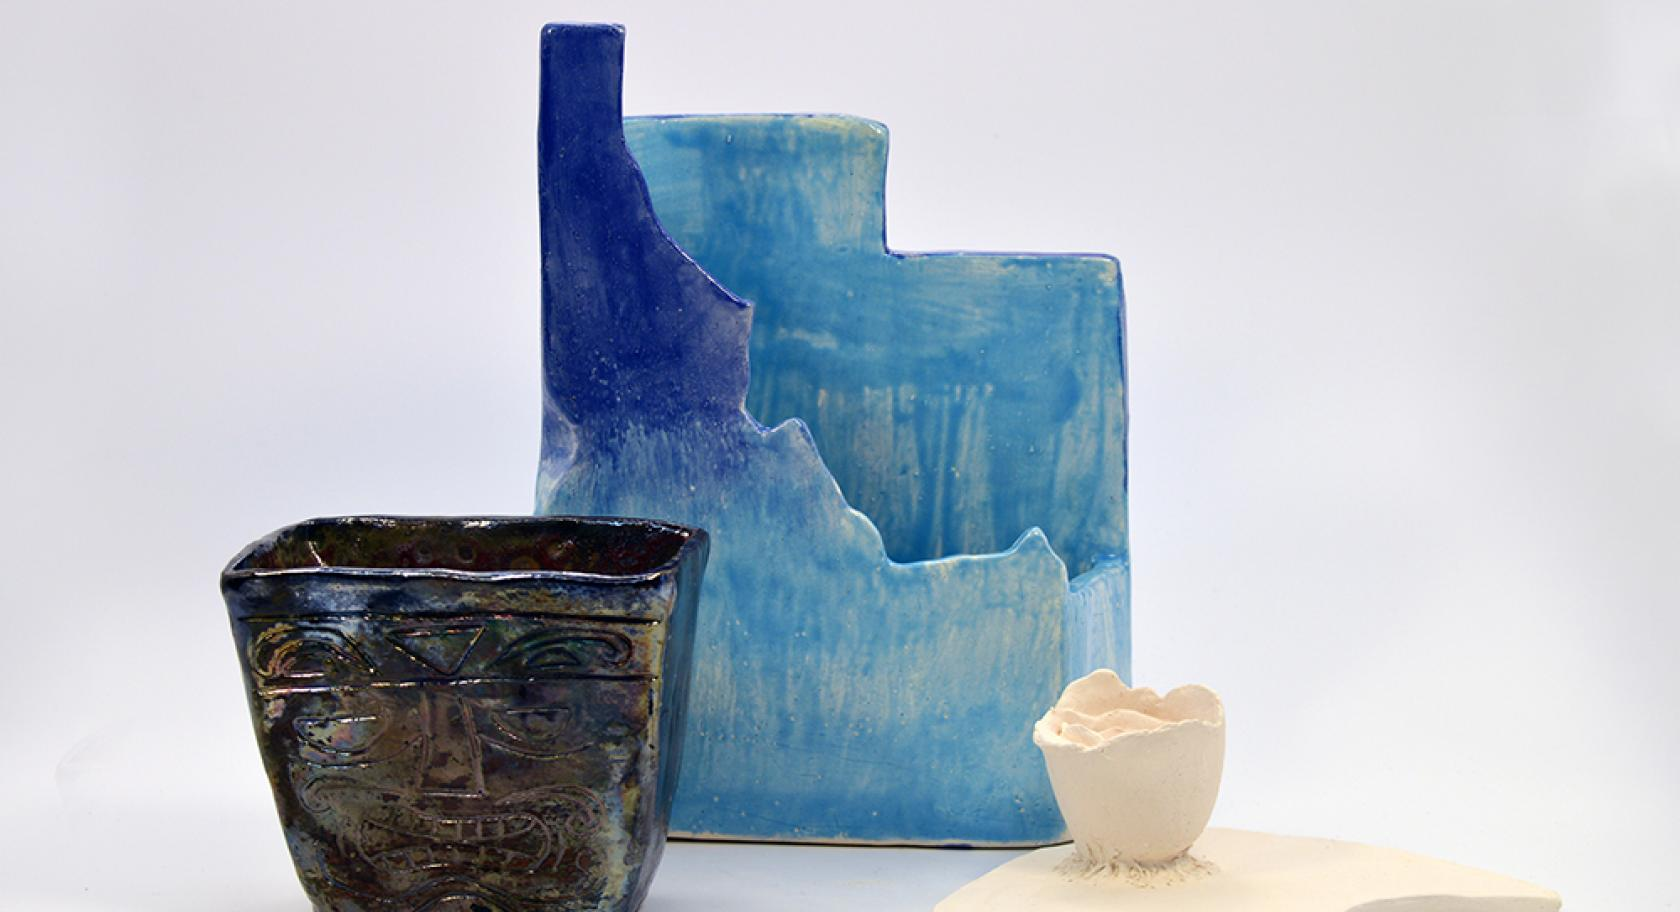 Identity by Zoe Hoopes, Leilani Zamora and Kalayee Hokum, three ceramic object, square black vase, blue vessel Idaho and Utah state shapes, white crescent with small white cup attached